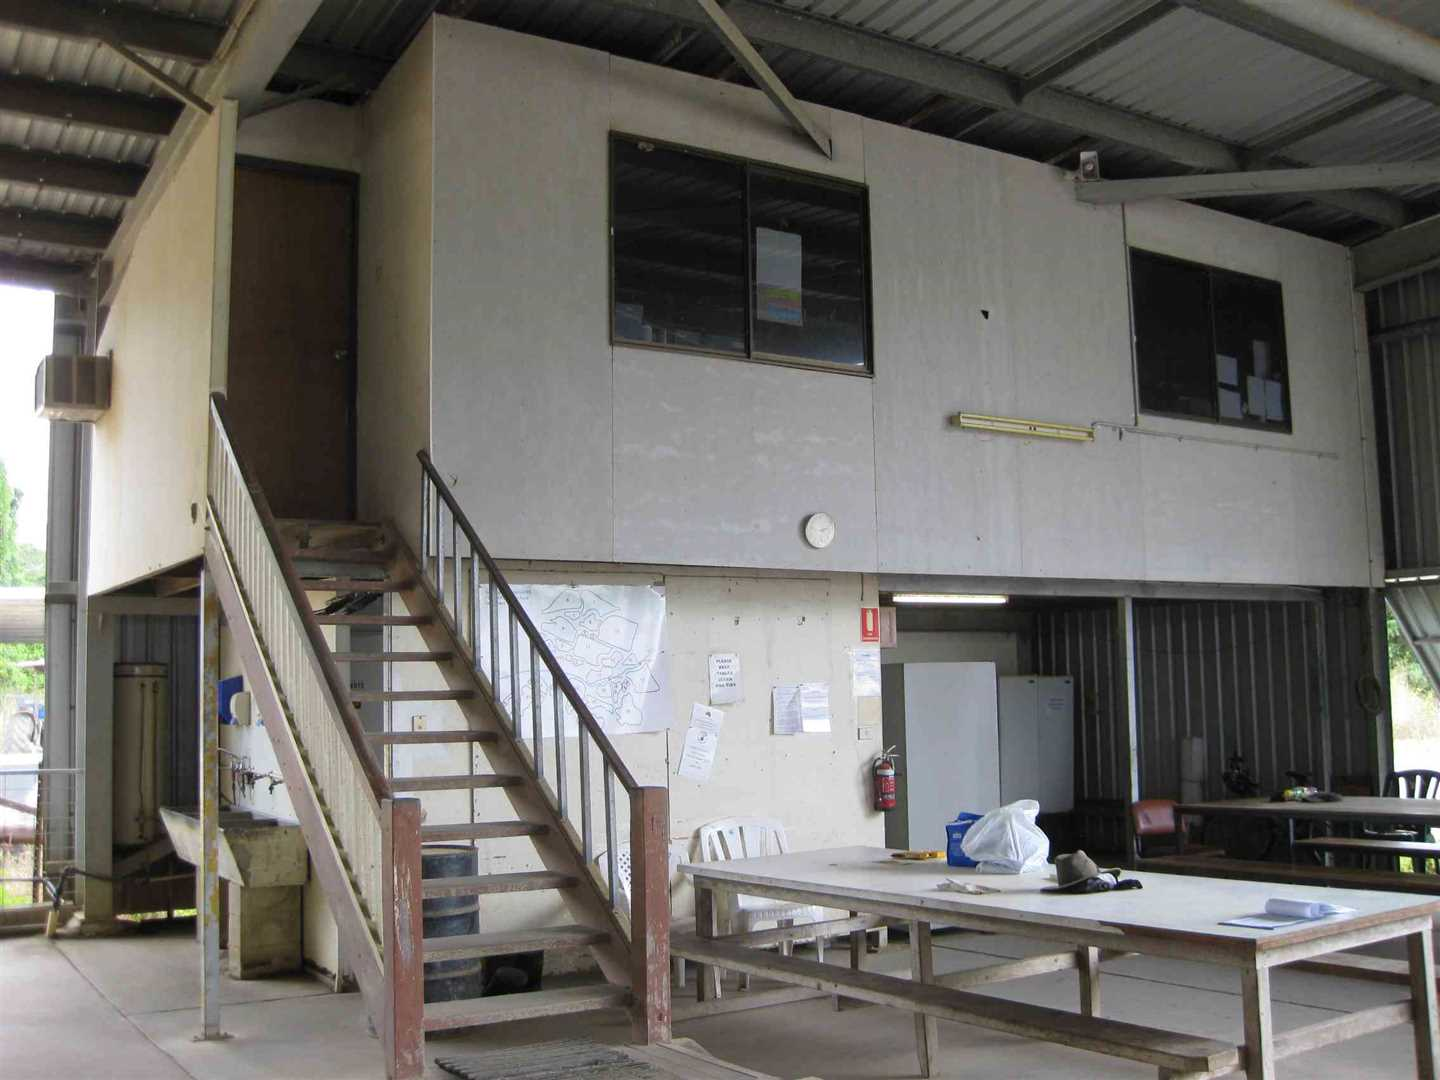 View of part of inside packing shed showing part of upstairs office and downstairs workers eating area